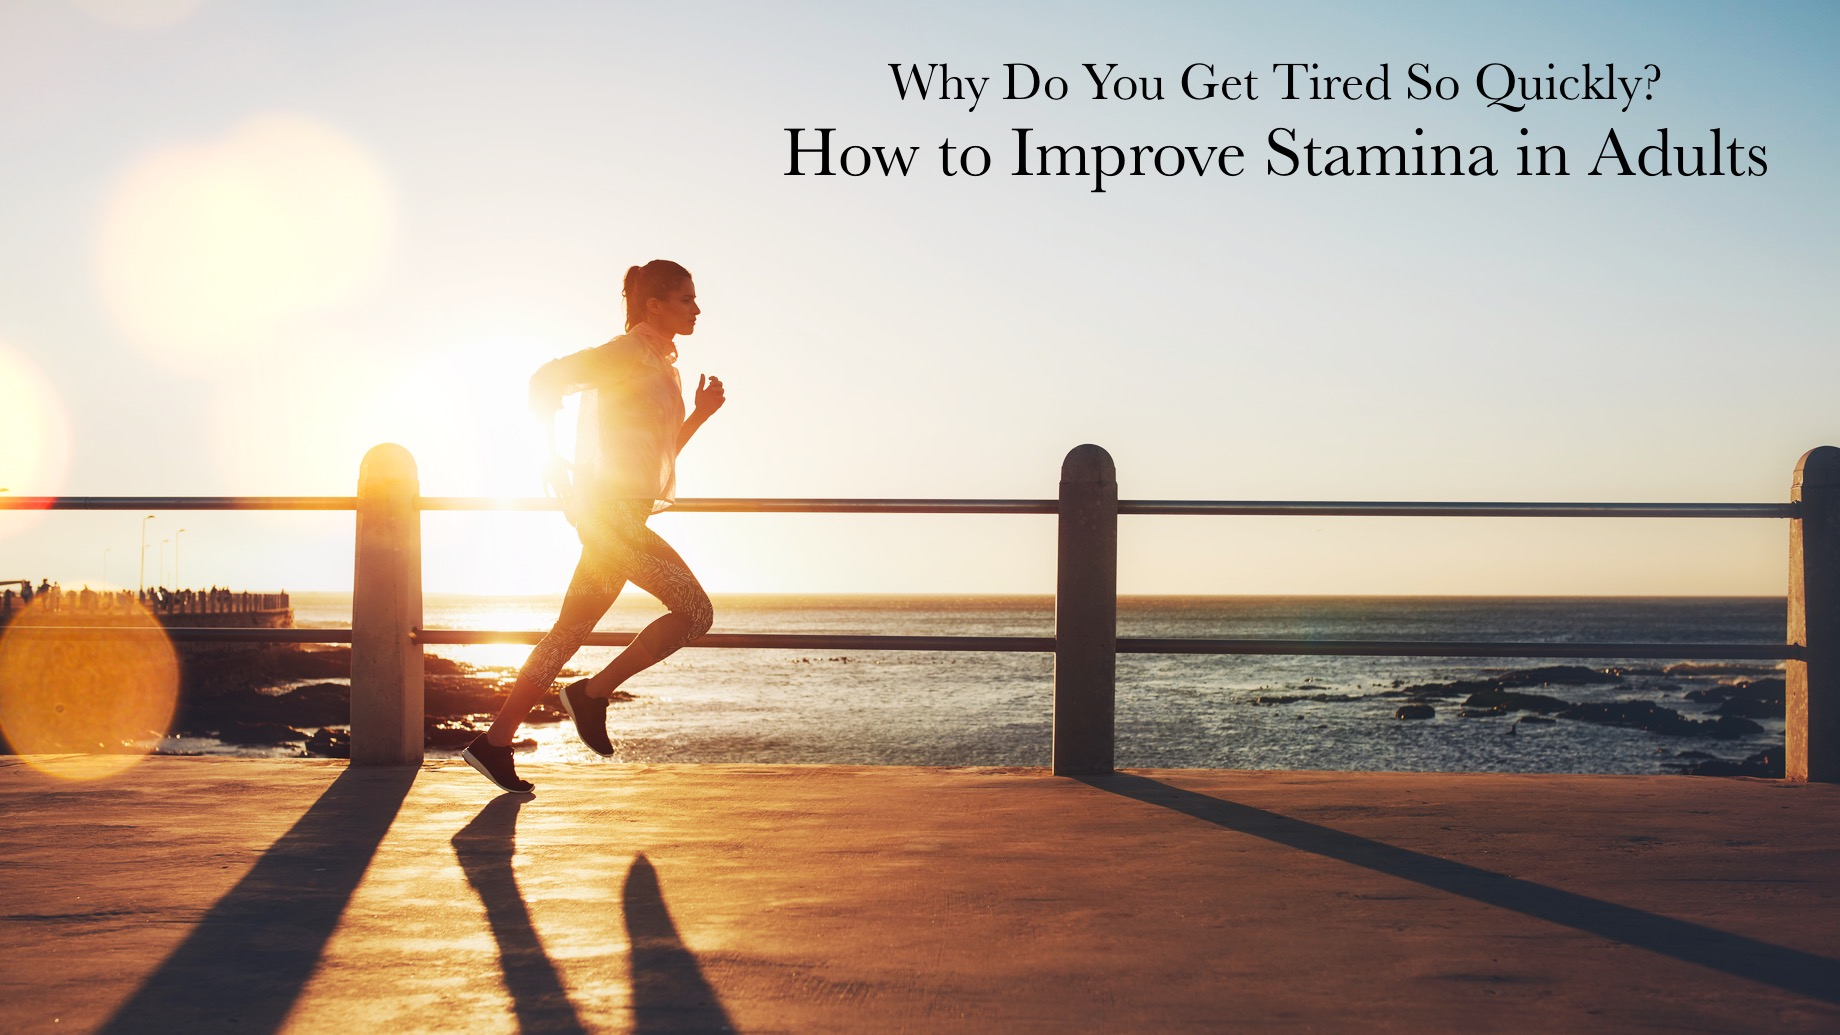 Why Do You Get Tired So Quickly? How to Improve Stamina in Adults